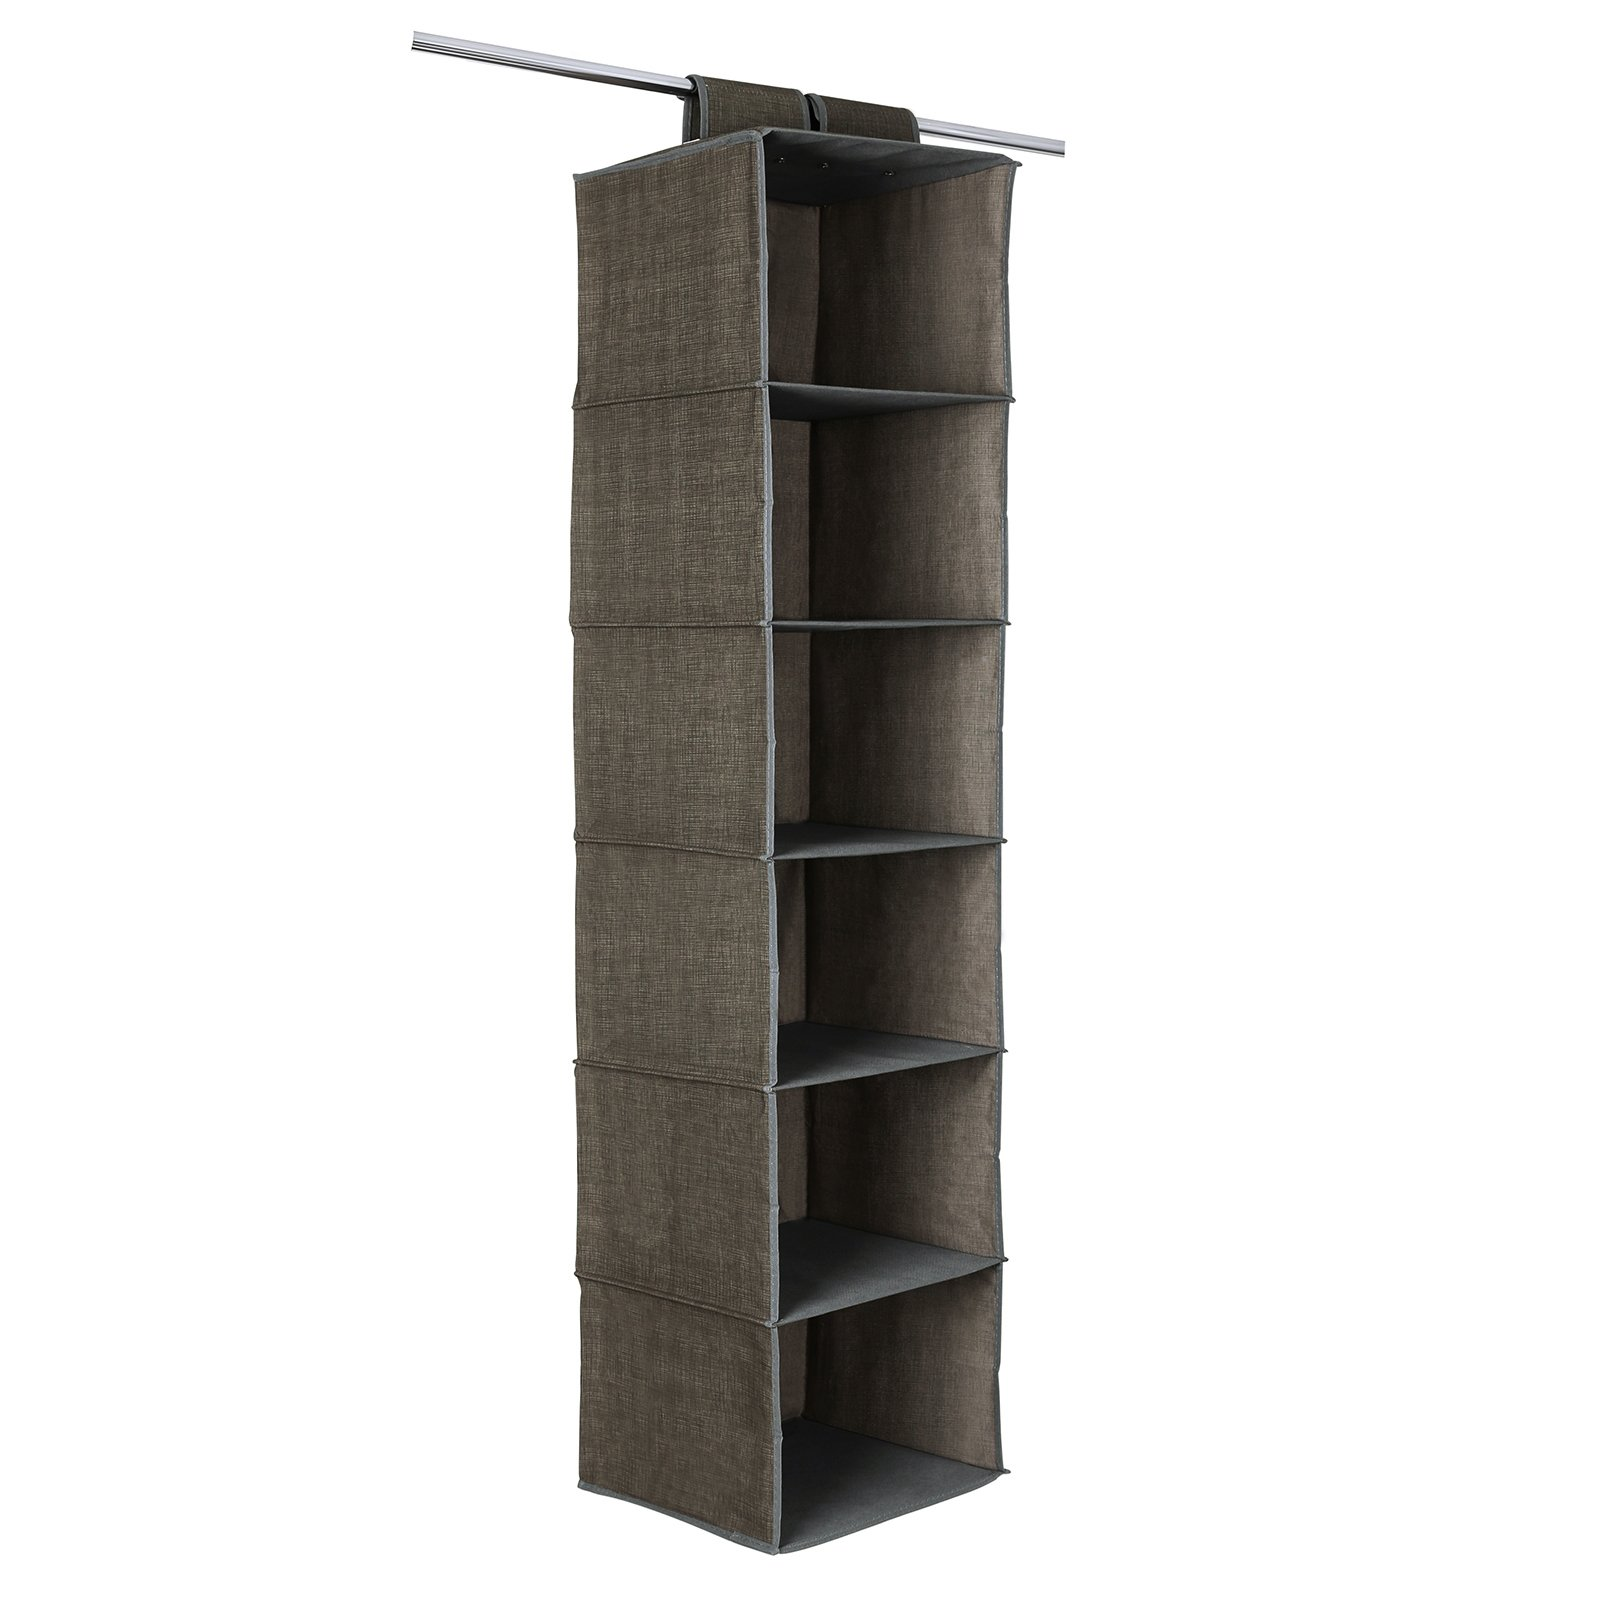 SONGMICS 6-Shelf Hanging Closet Organizer Sturdy Collapsible Storage Shelves for Clothes and Shoes Light Brown URCH08K